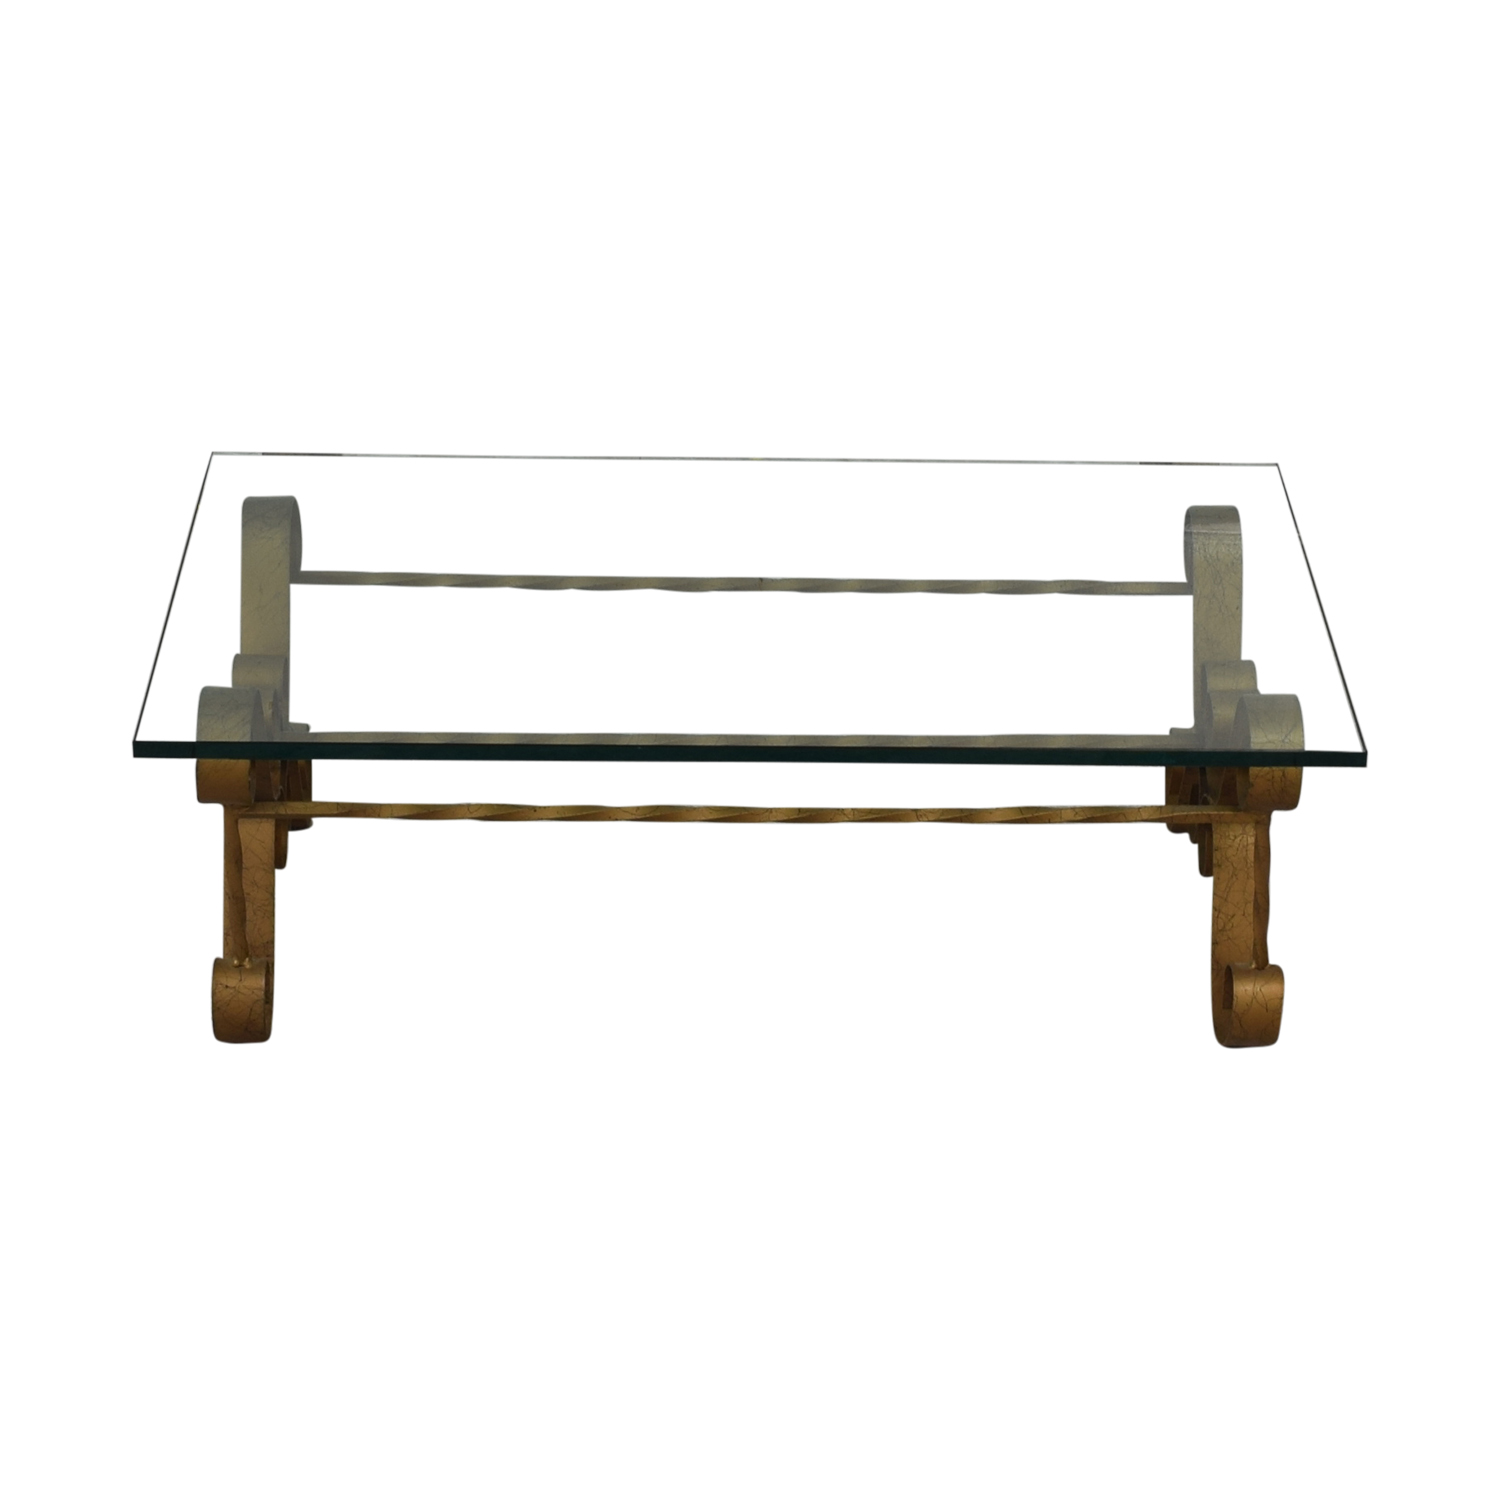 Antique Gilt Iron Coffee Table used